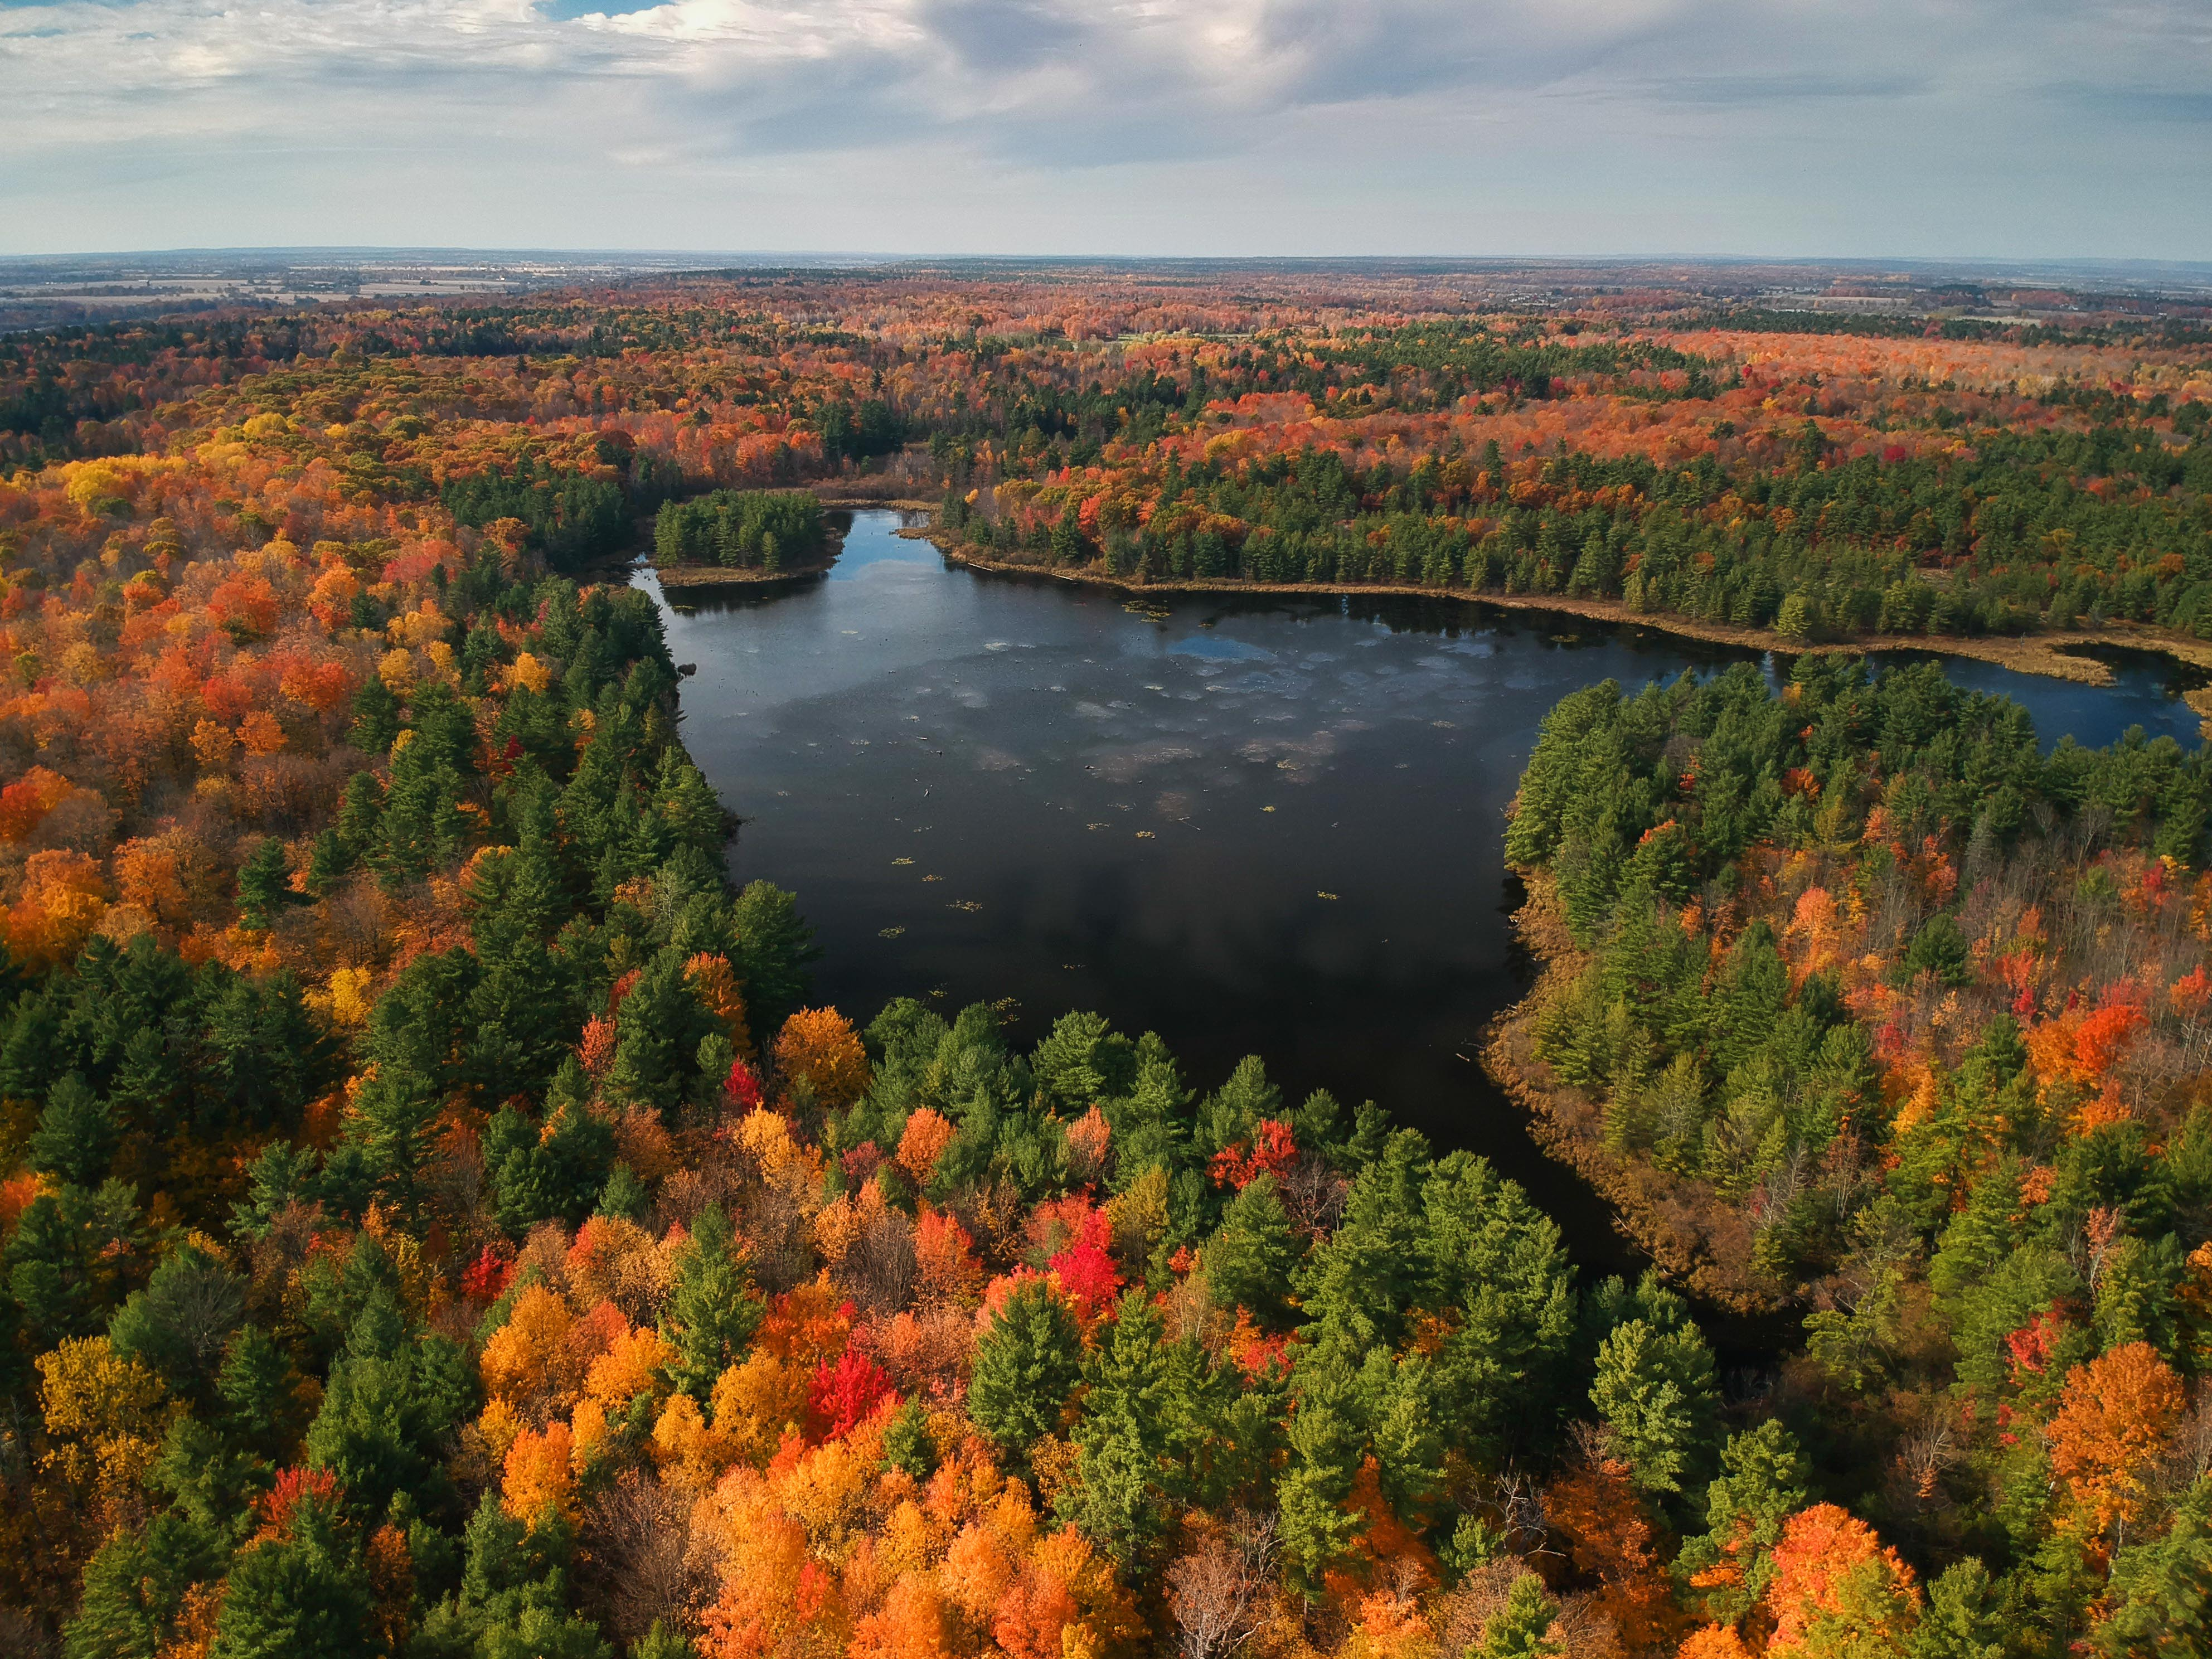 Fall colors in Ontario, Canada